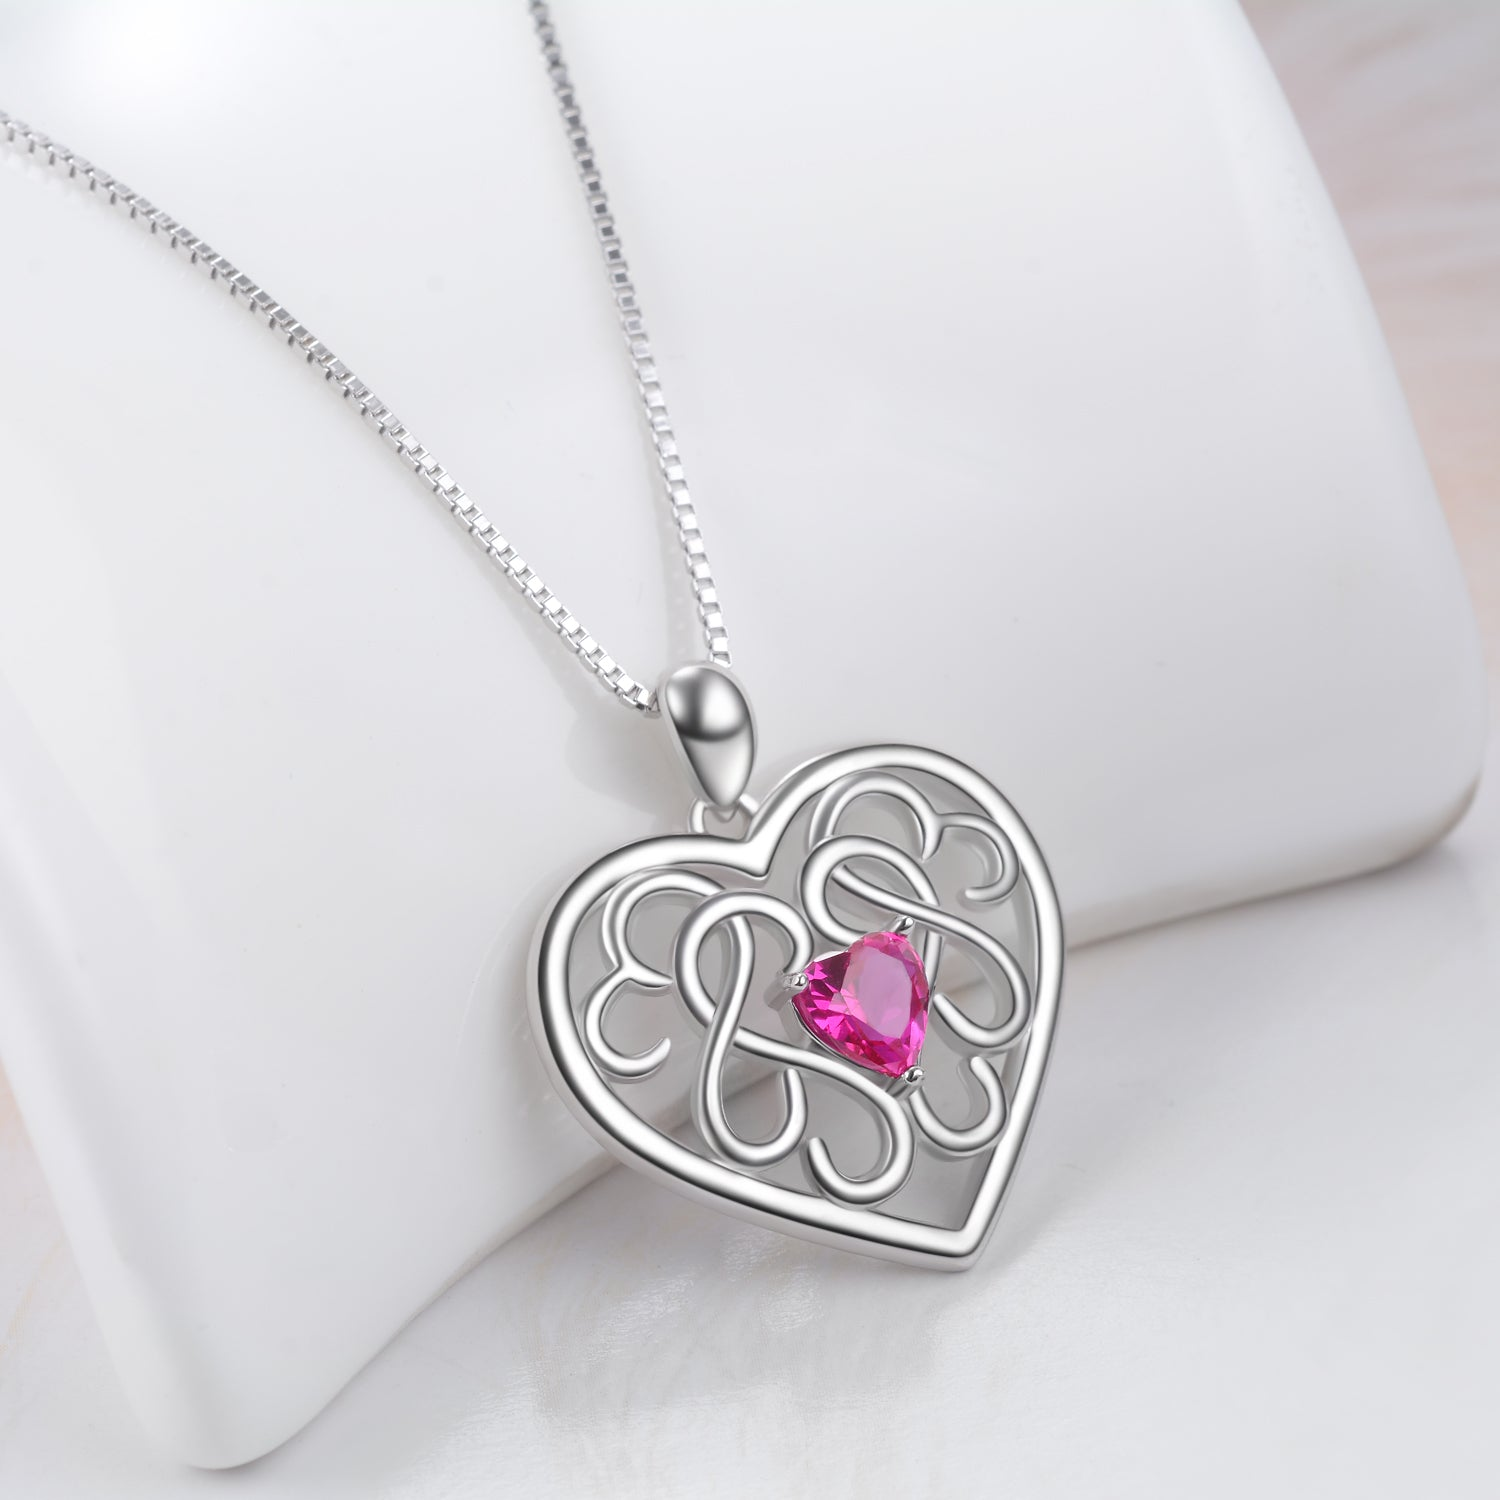 Filigree Love Heart Necklaces Cubic Zirconia Hollow Loving Necklace